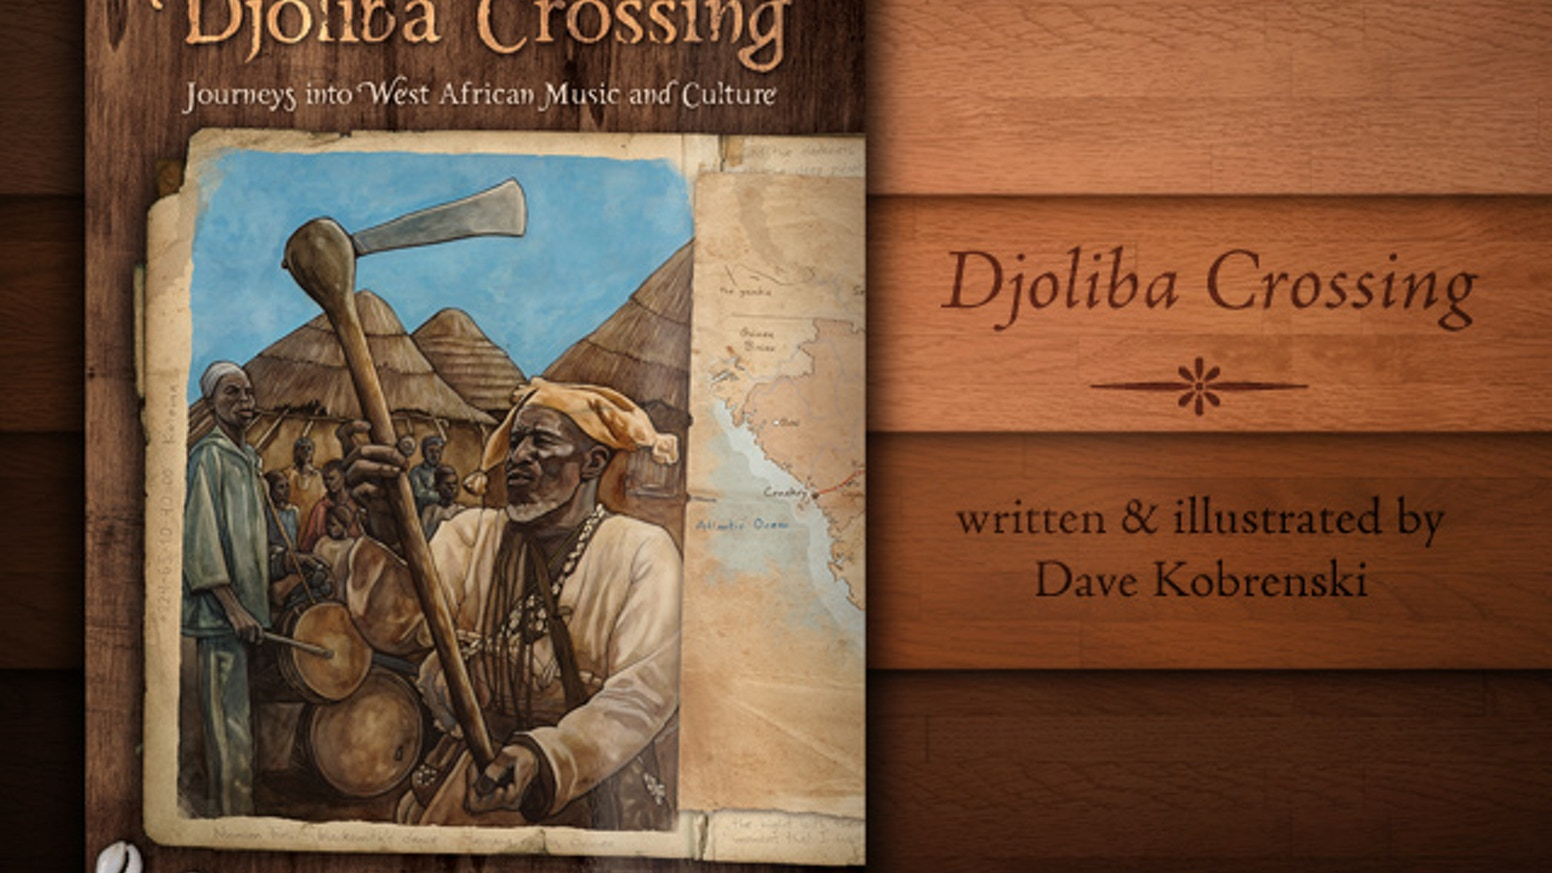 Djoliba Crossing tells the story of an artist's journey into the heart of West Africa to explore Mandé music and culture.